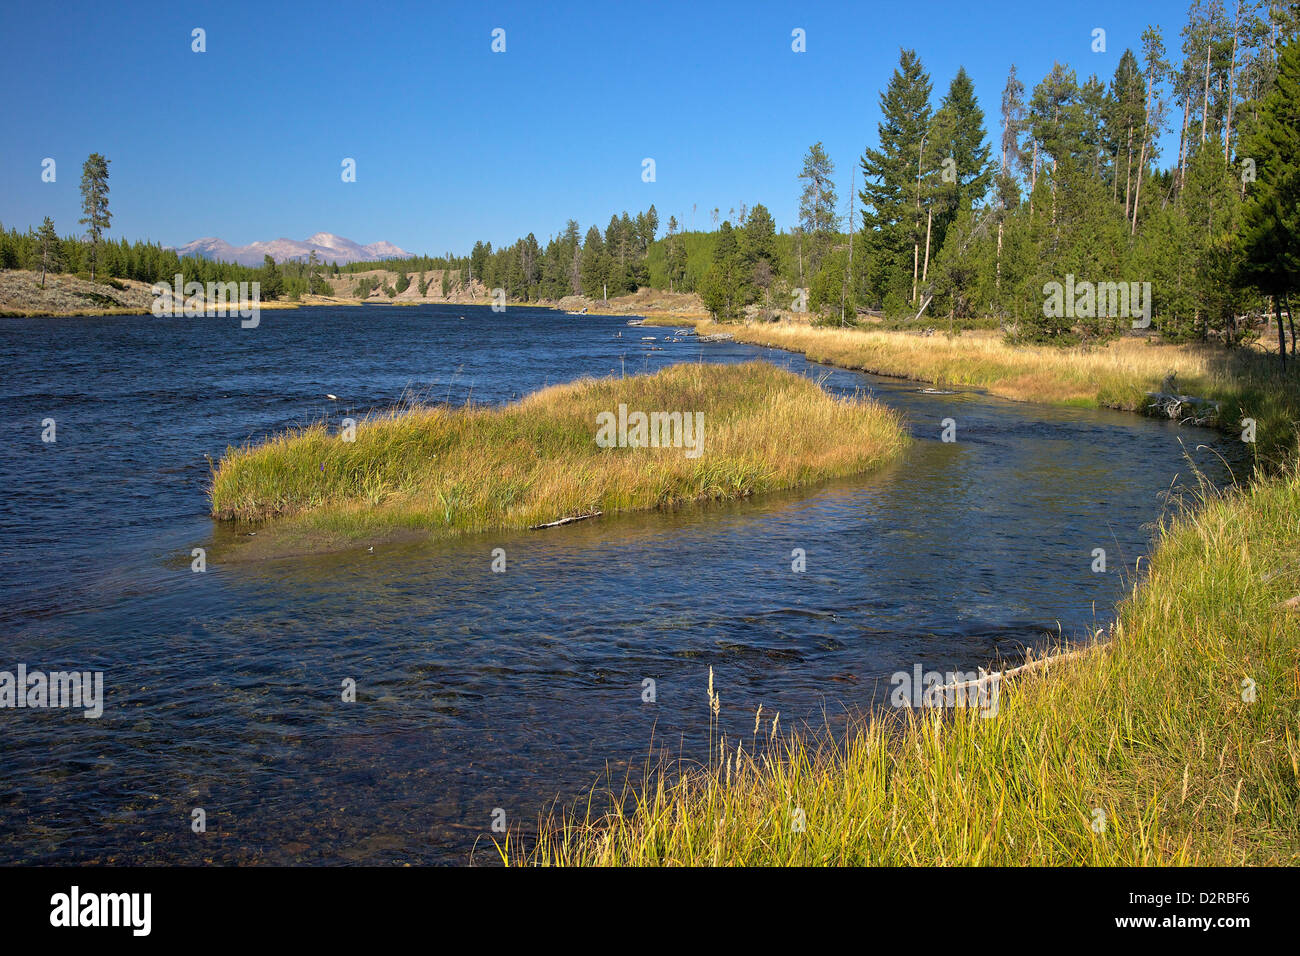 Madison River valley near Madison, Yellowstone National Park, Wyoming, USA - Stock Image